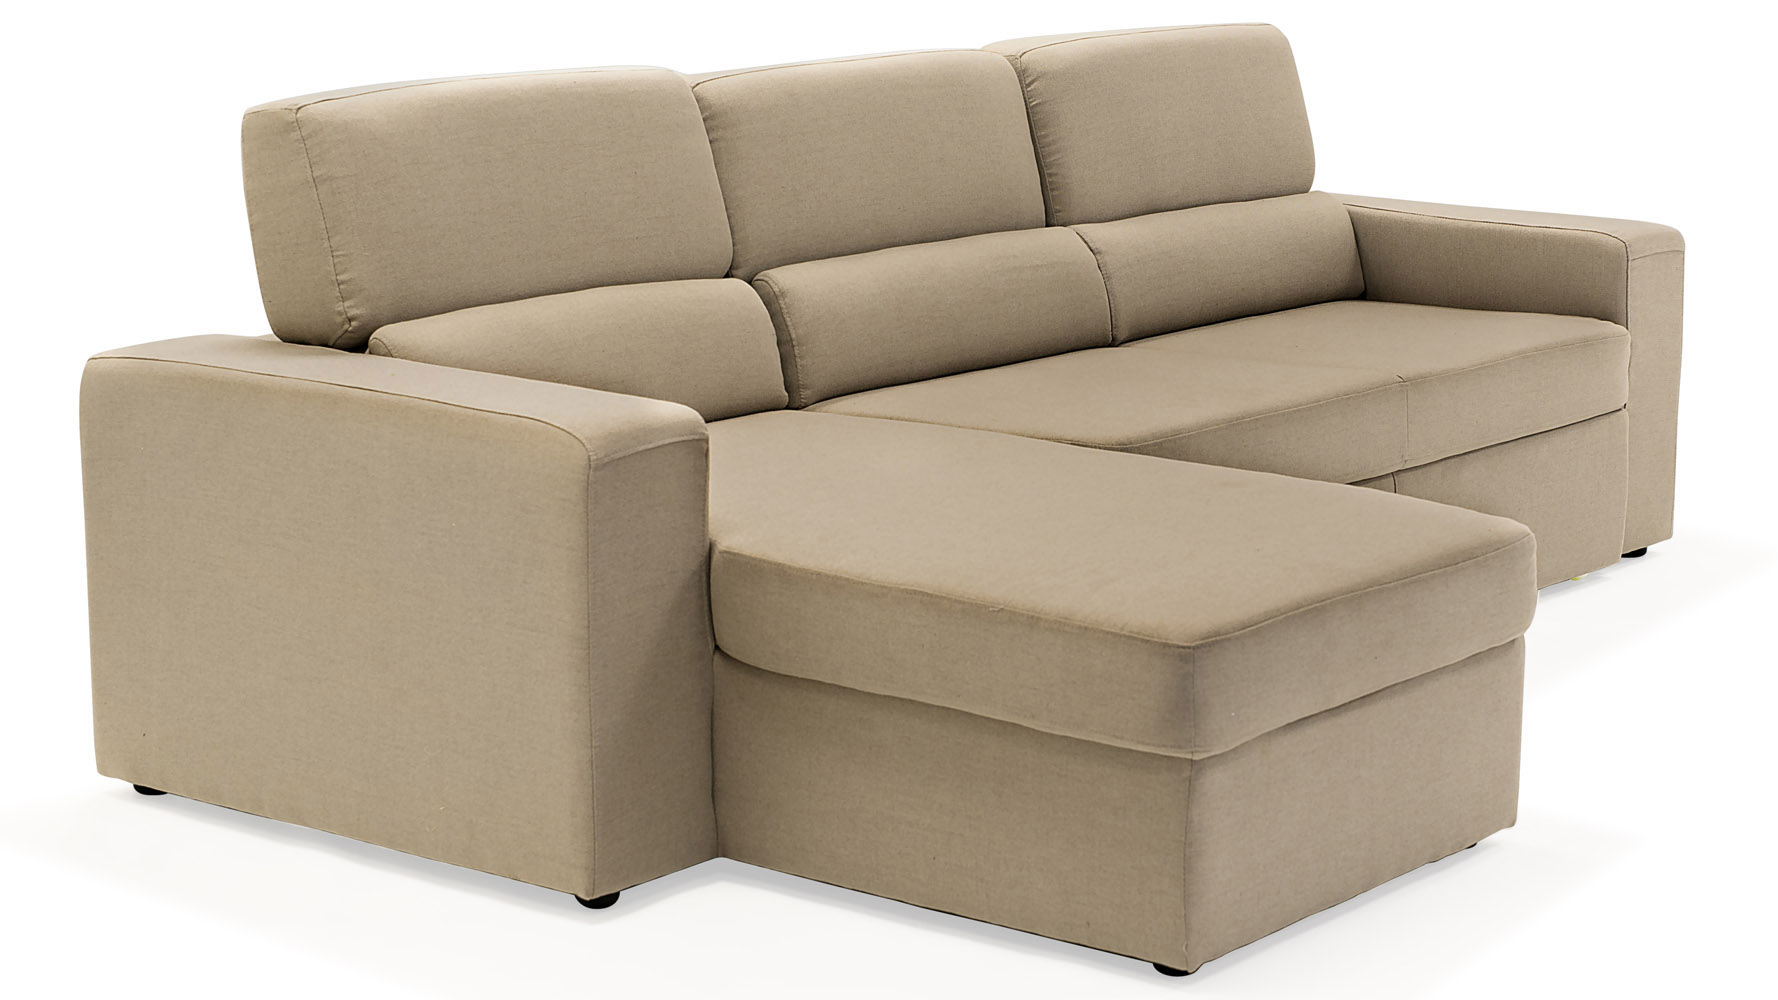 Manstad sofa bed sleeper sectional with chaise grey for Beige sectional with chaise